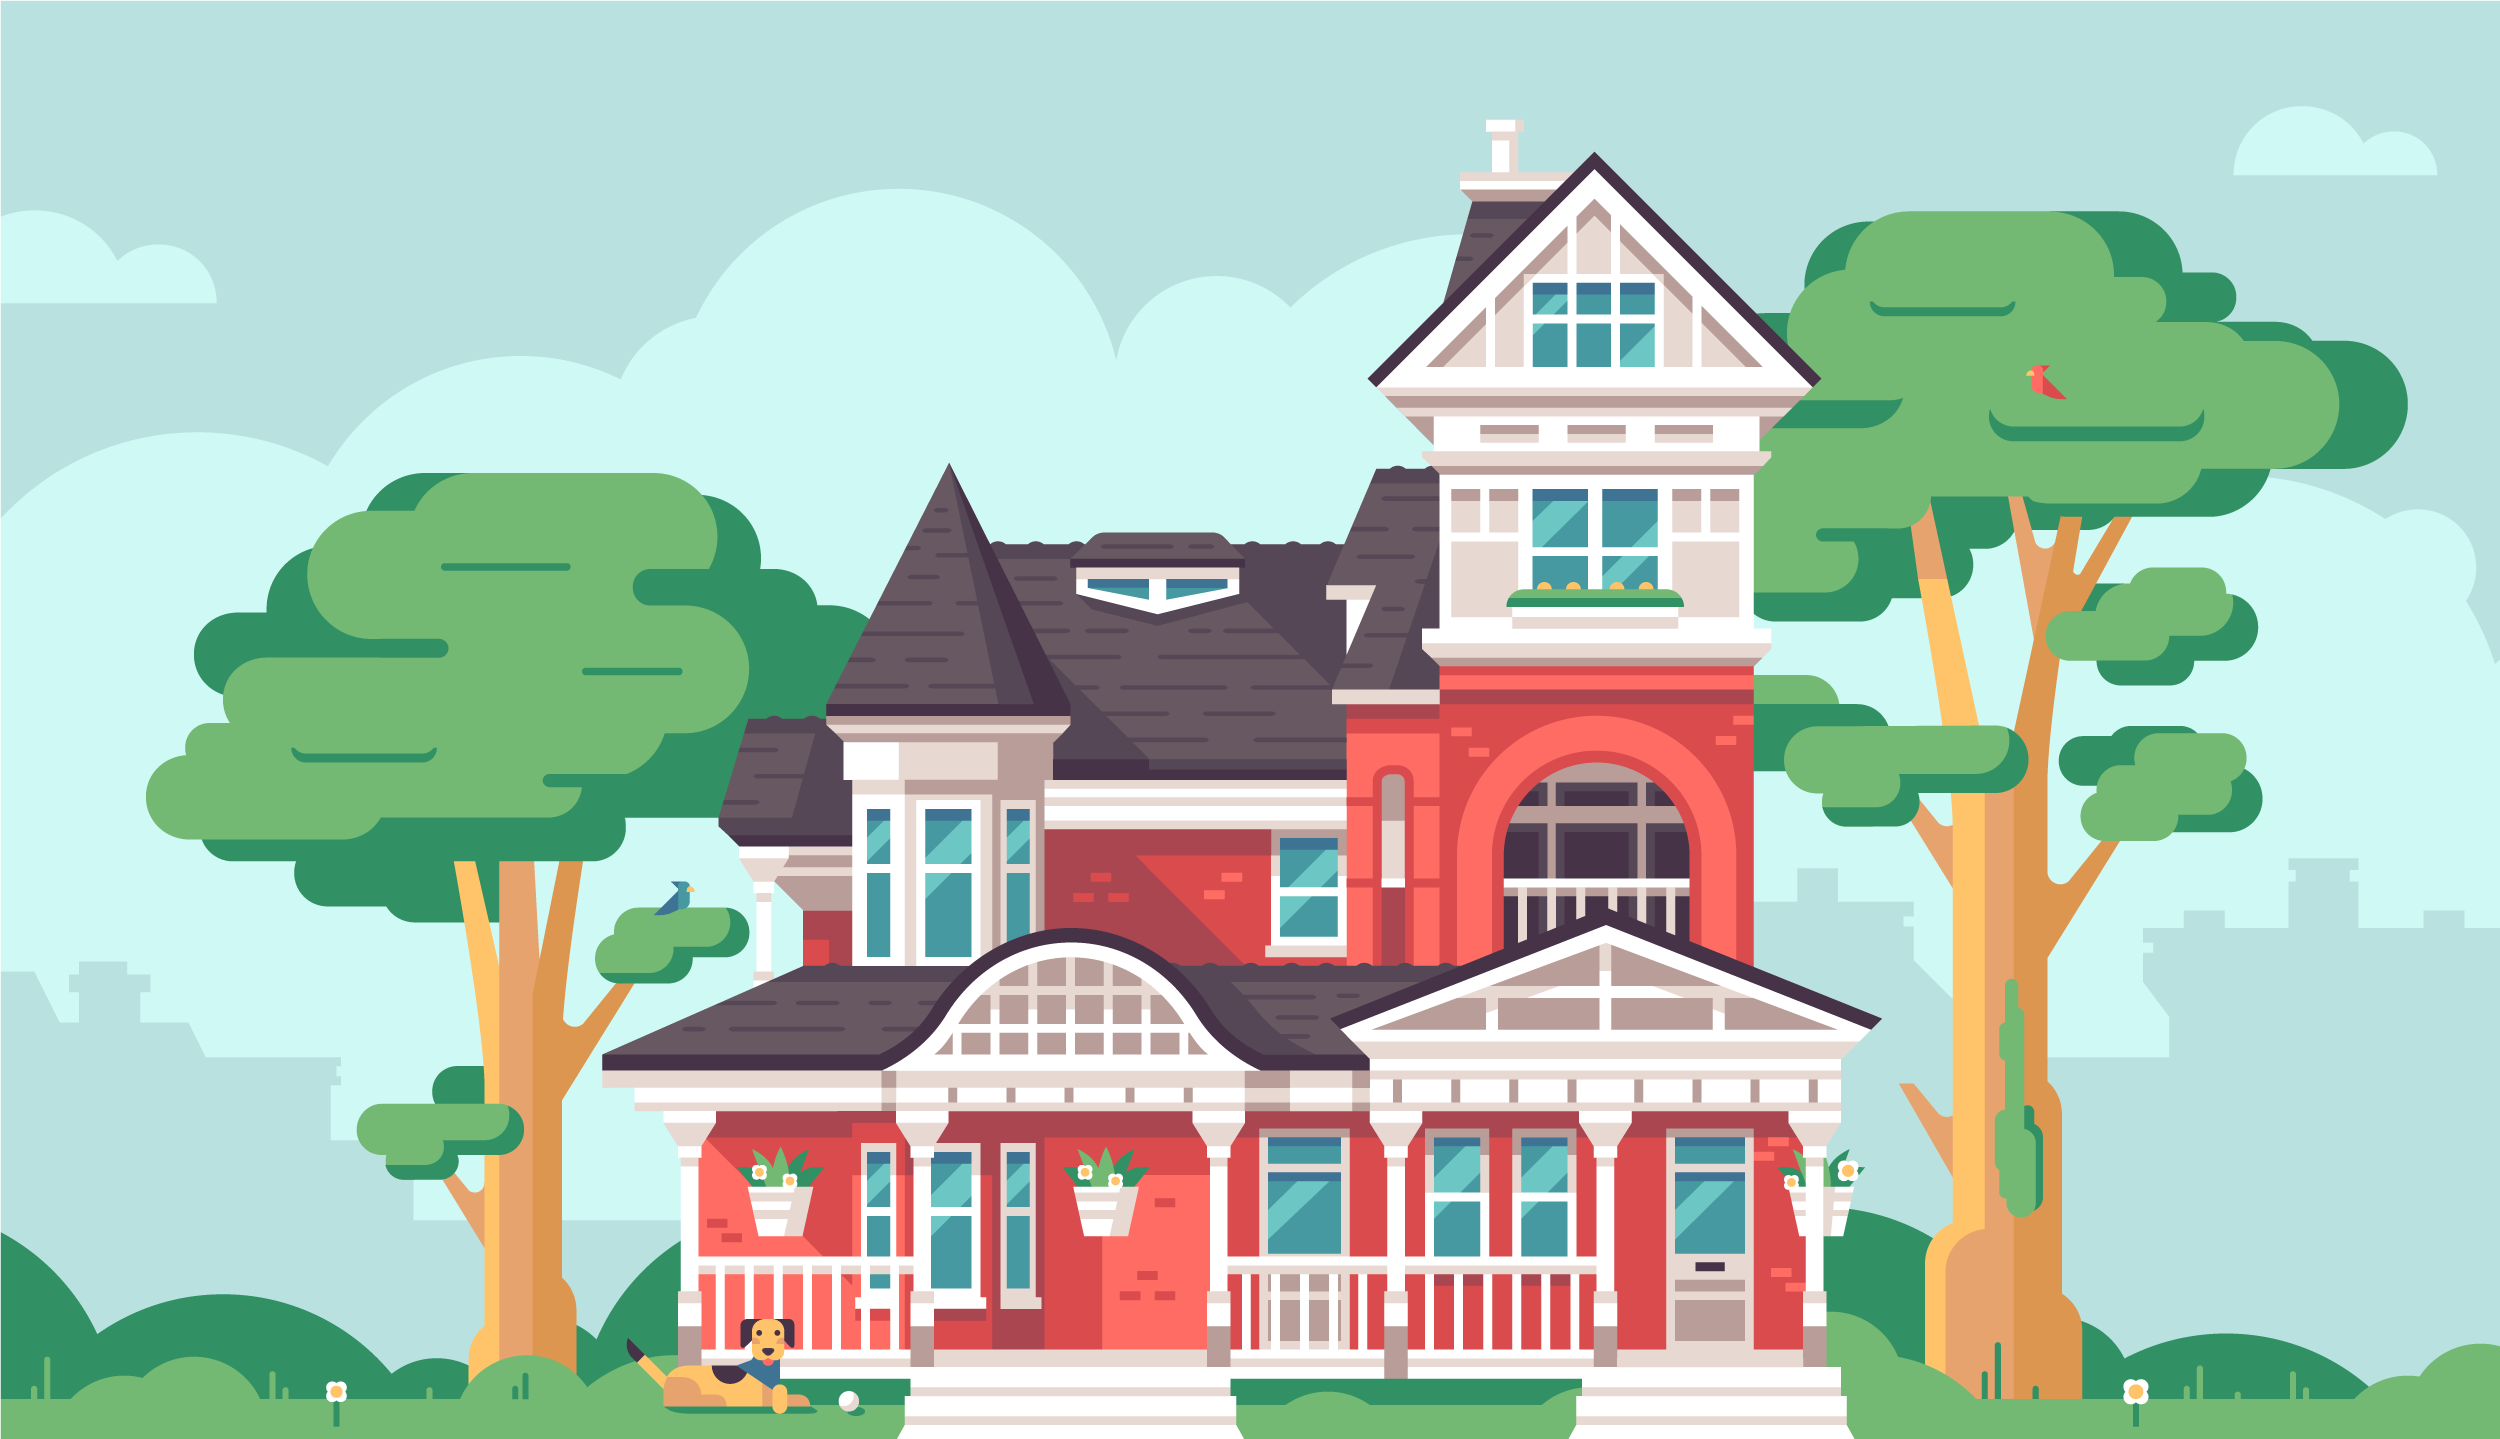 Alamo Pharma Service Illustrations by Matt Anderson - Victorian House Exterior